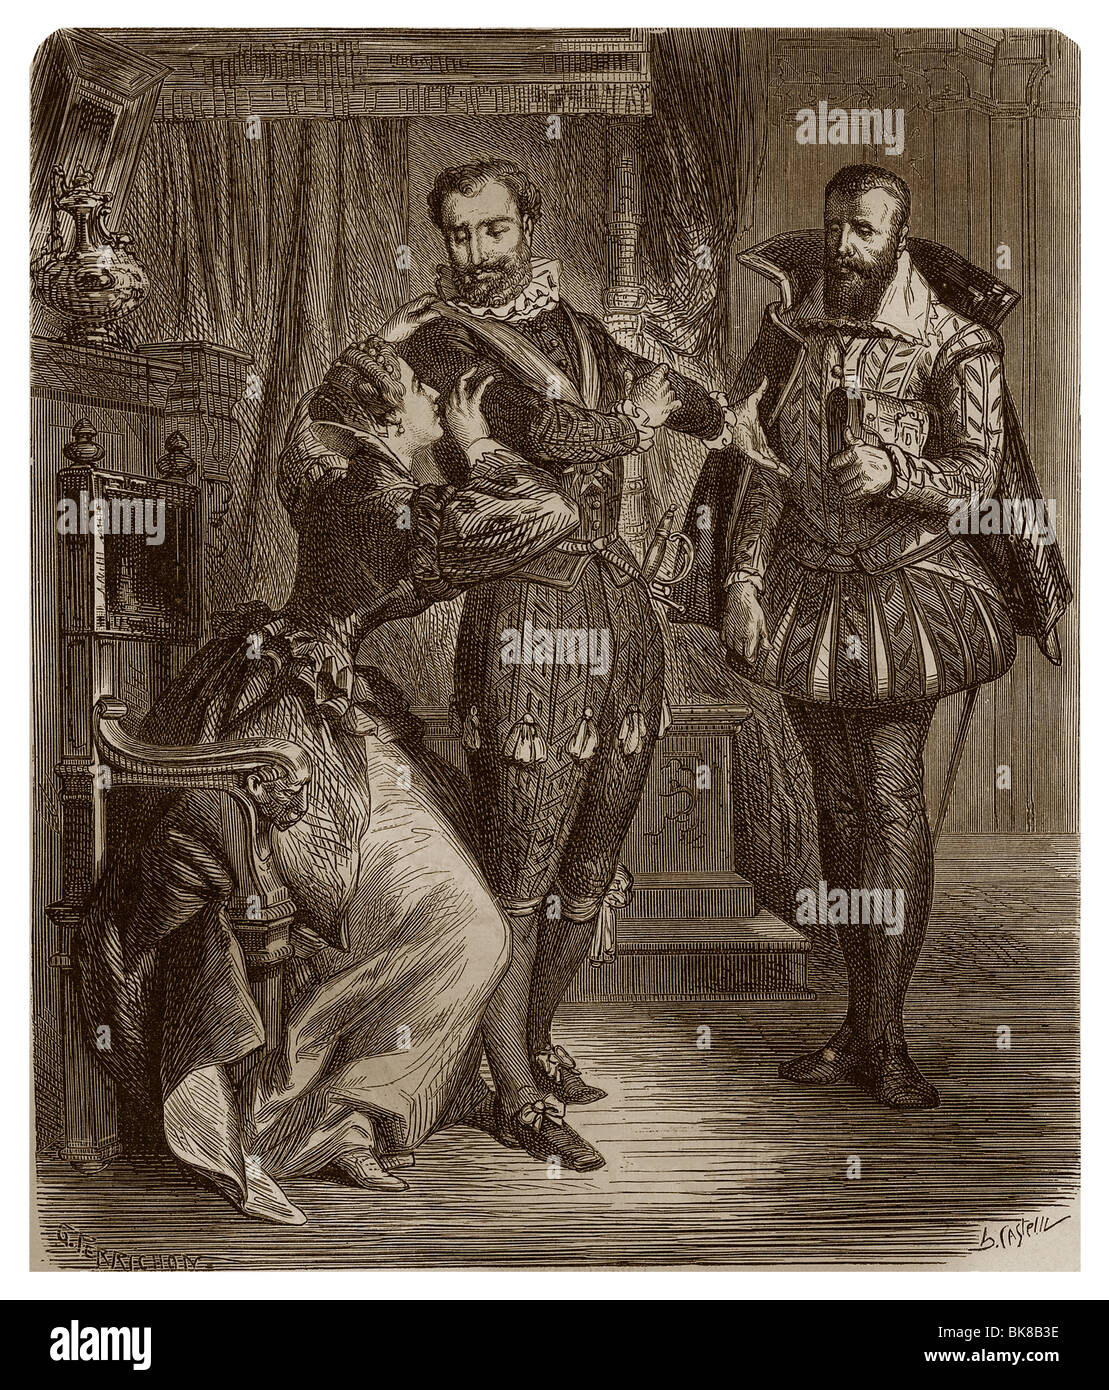 Towards 1594, Gabrielle d' Estrées, King Henry IV of France and the Duke of Sully in the room of the Duchess. - Stock Image